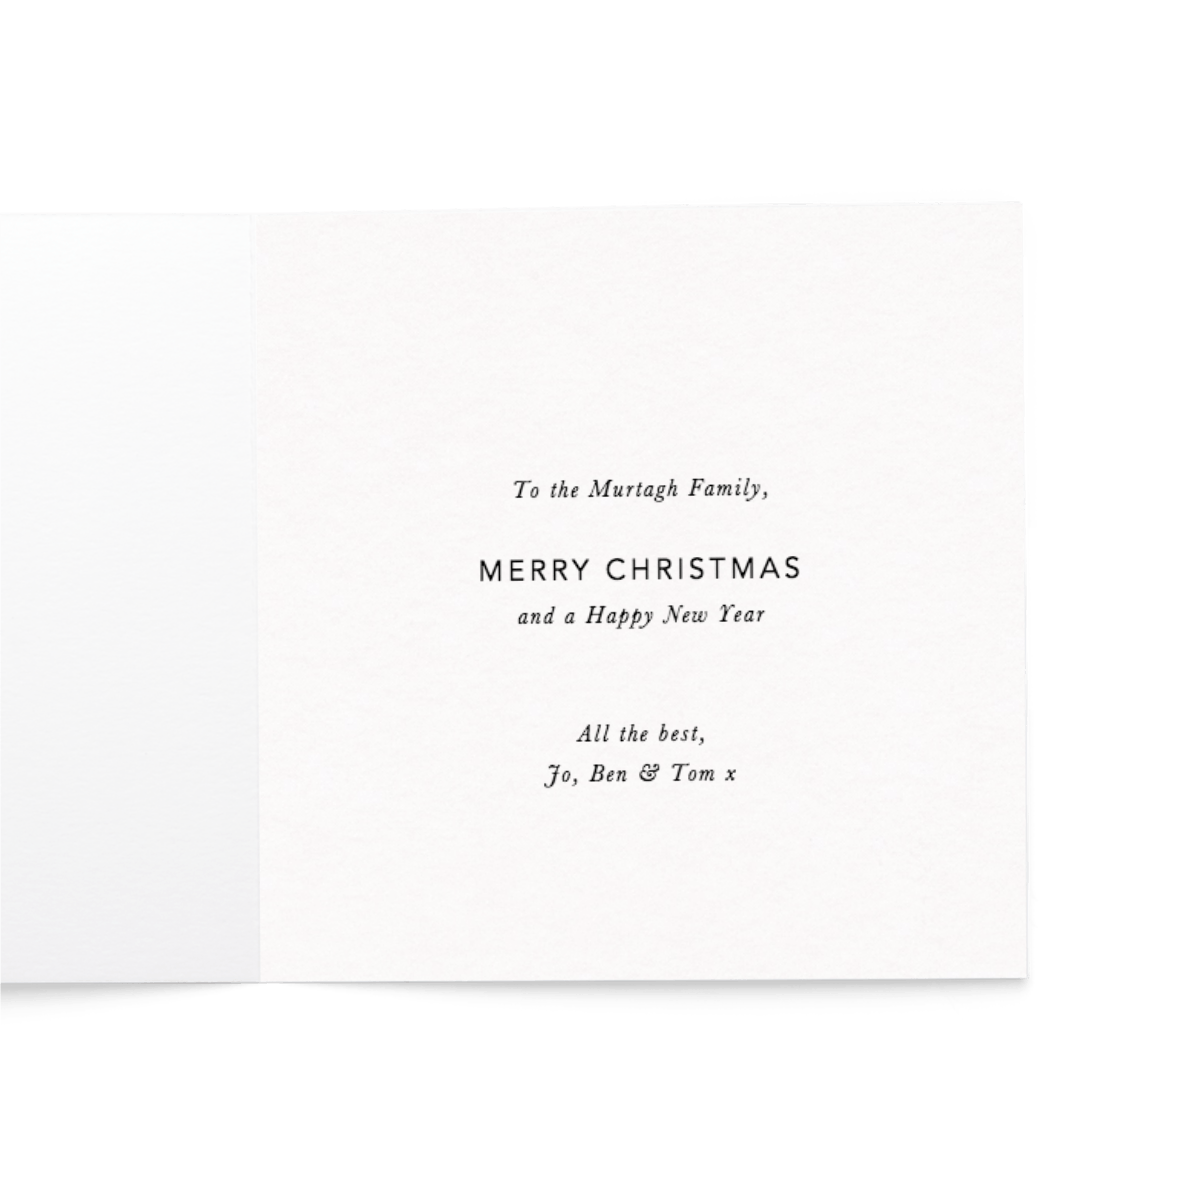 Https%3a%2f%2fwww.papier.com%2fproduct image%2f27705%2f21%2fmerry christmas white photo 6727 inside 1506076743.png?ixlib=rb 1.1